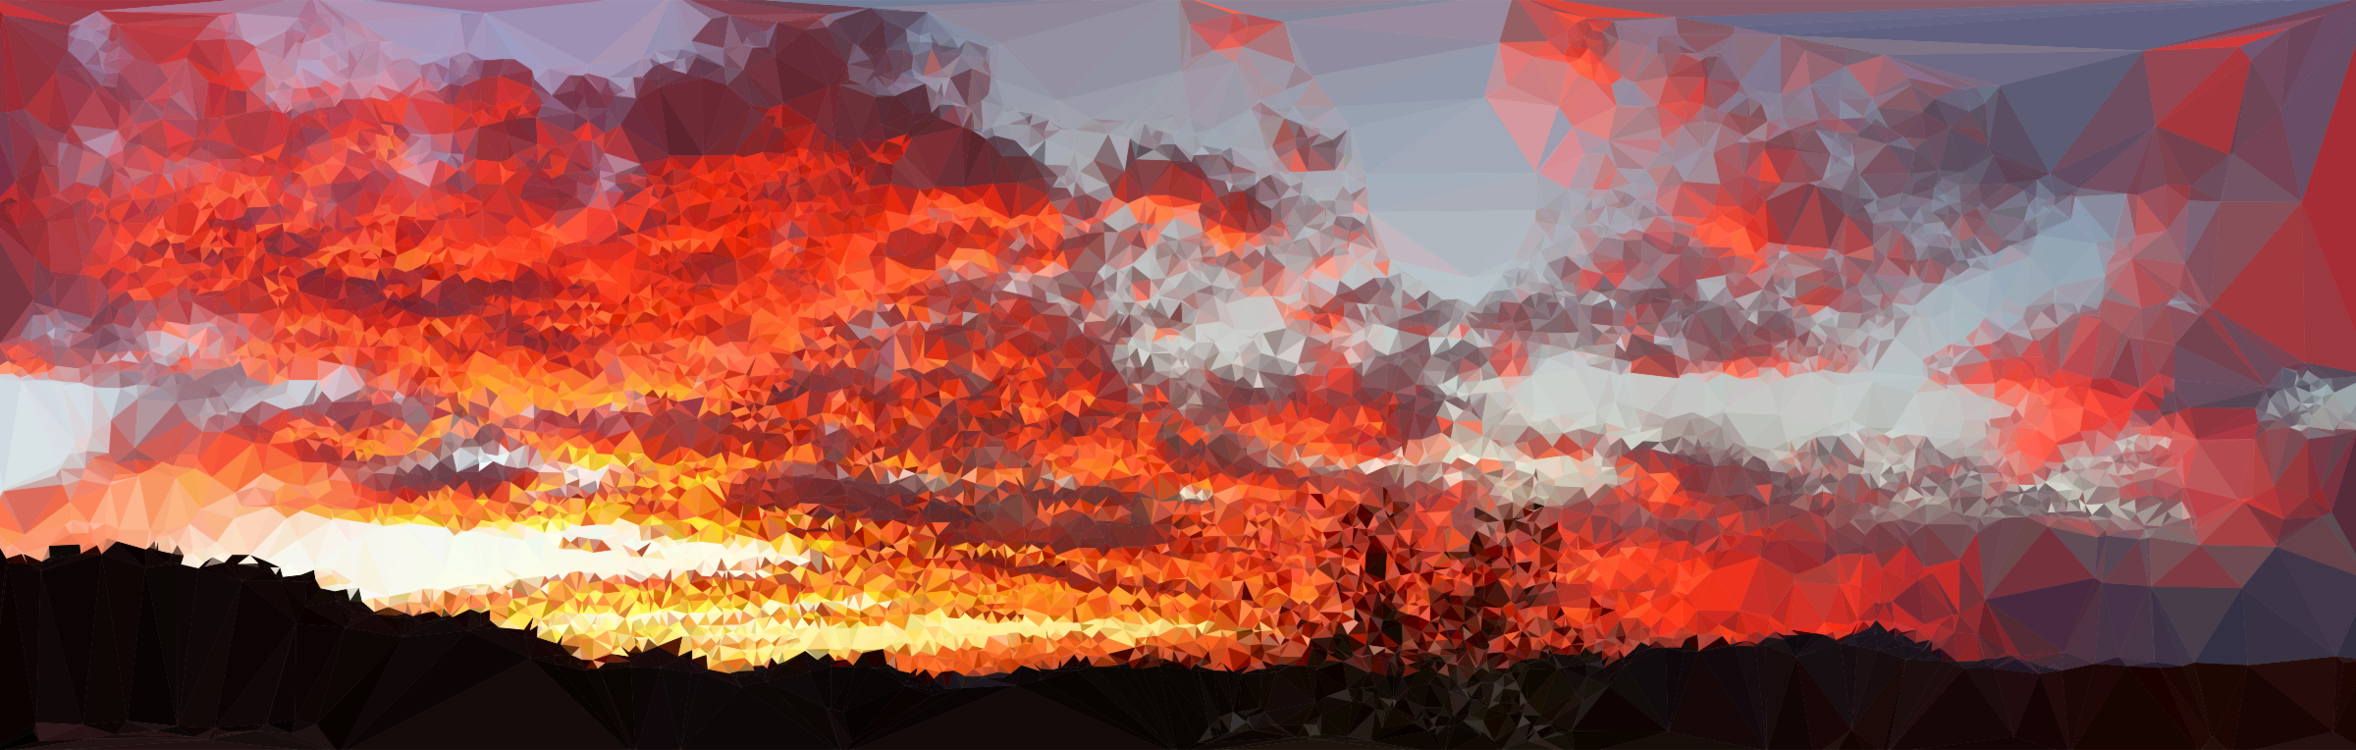 Wildfire,Mountain,Red Sky At Morning